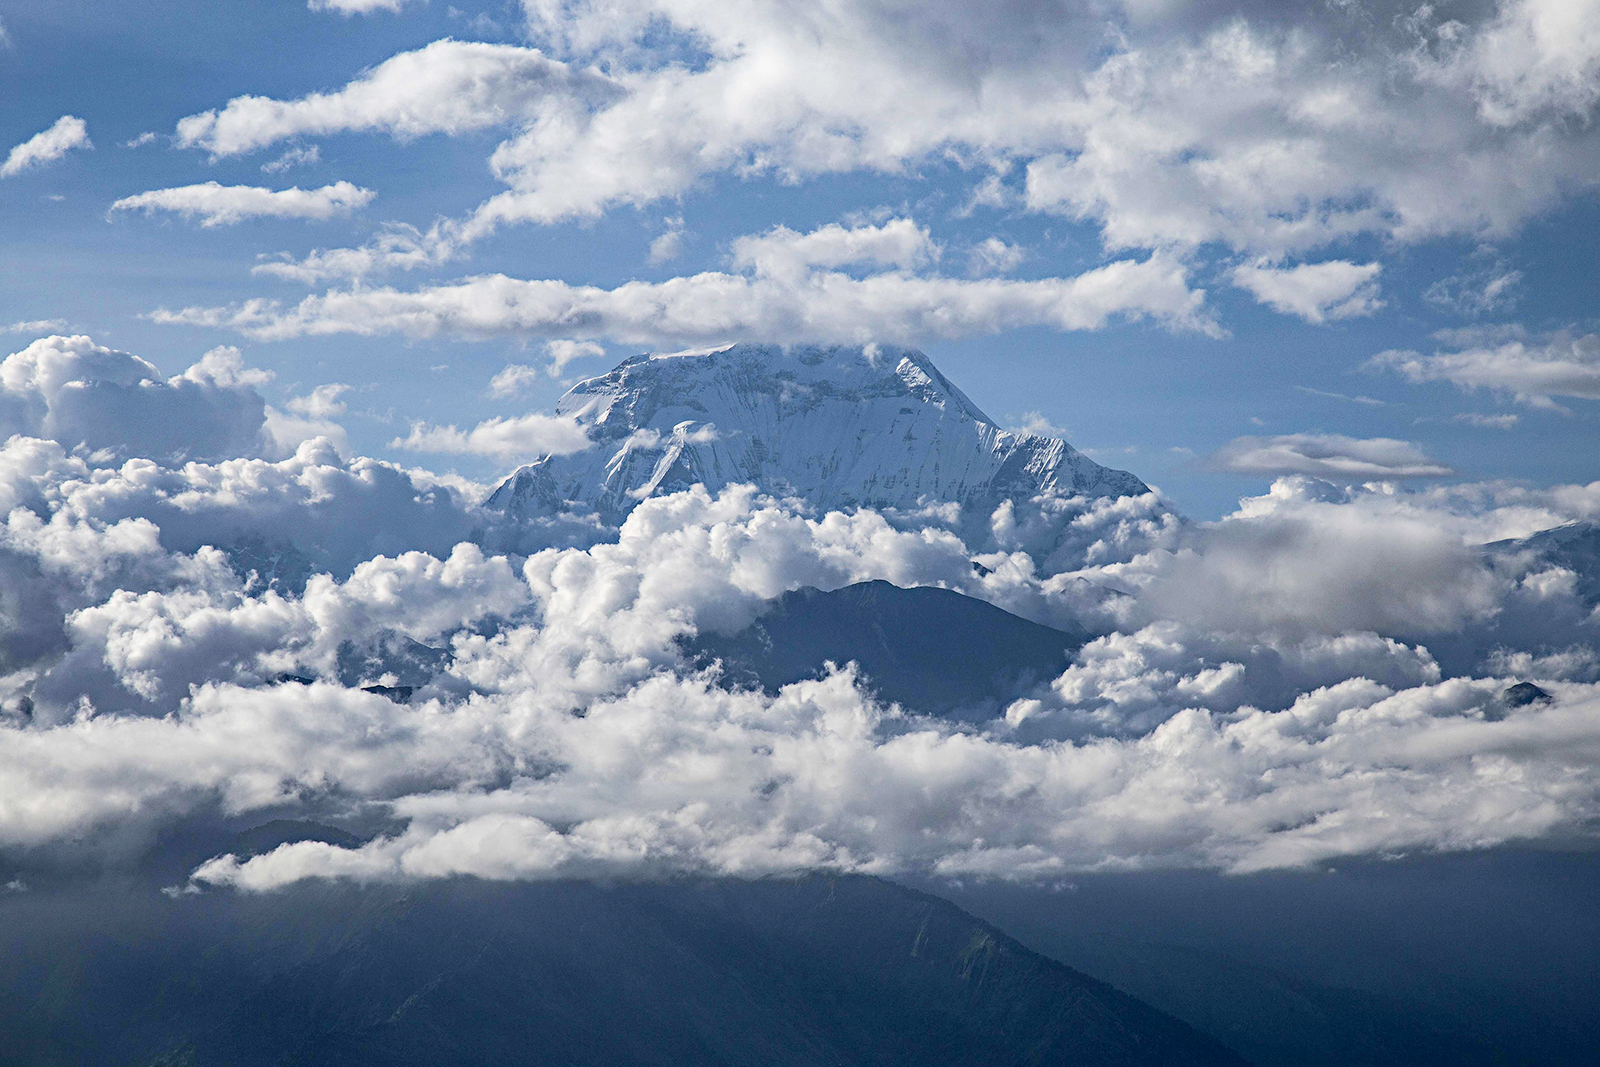 Mount Dhaulagiri is seen surrounded by clouds in Nepal, on August 22, 2019.